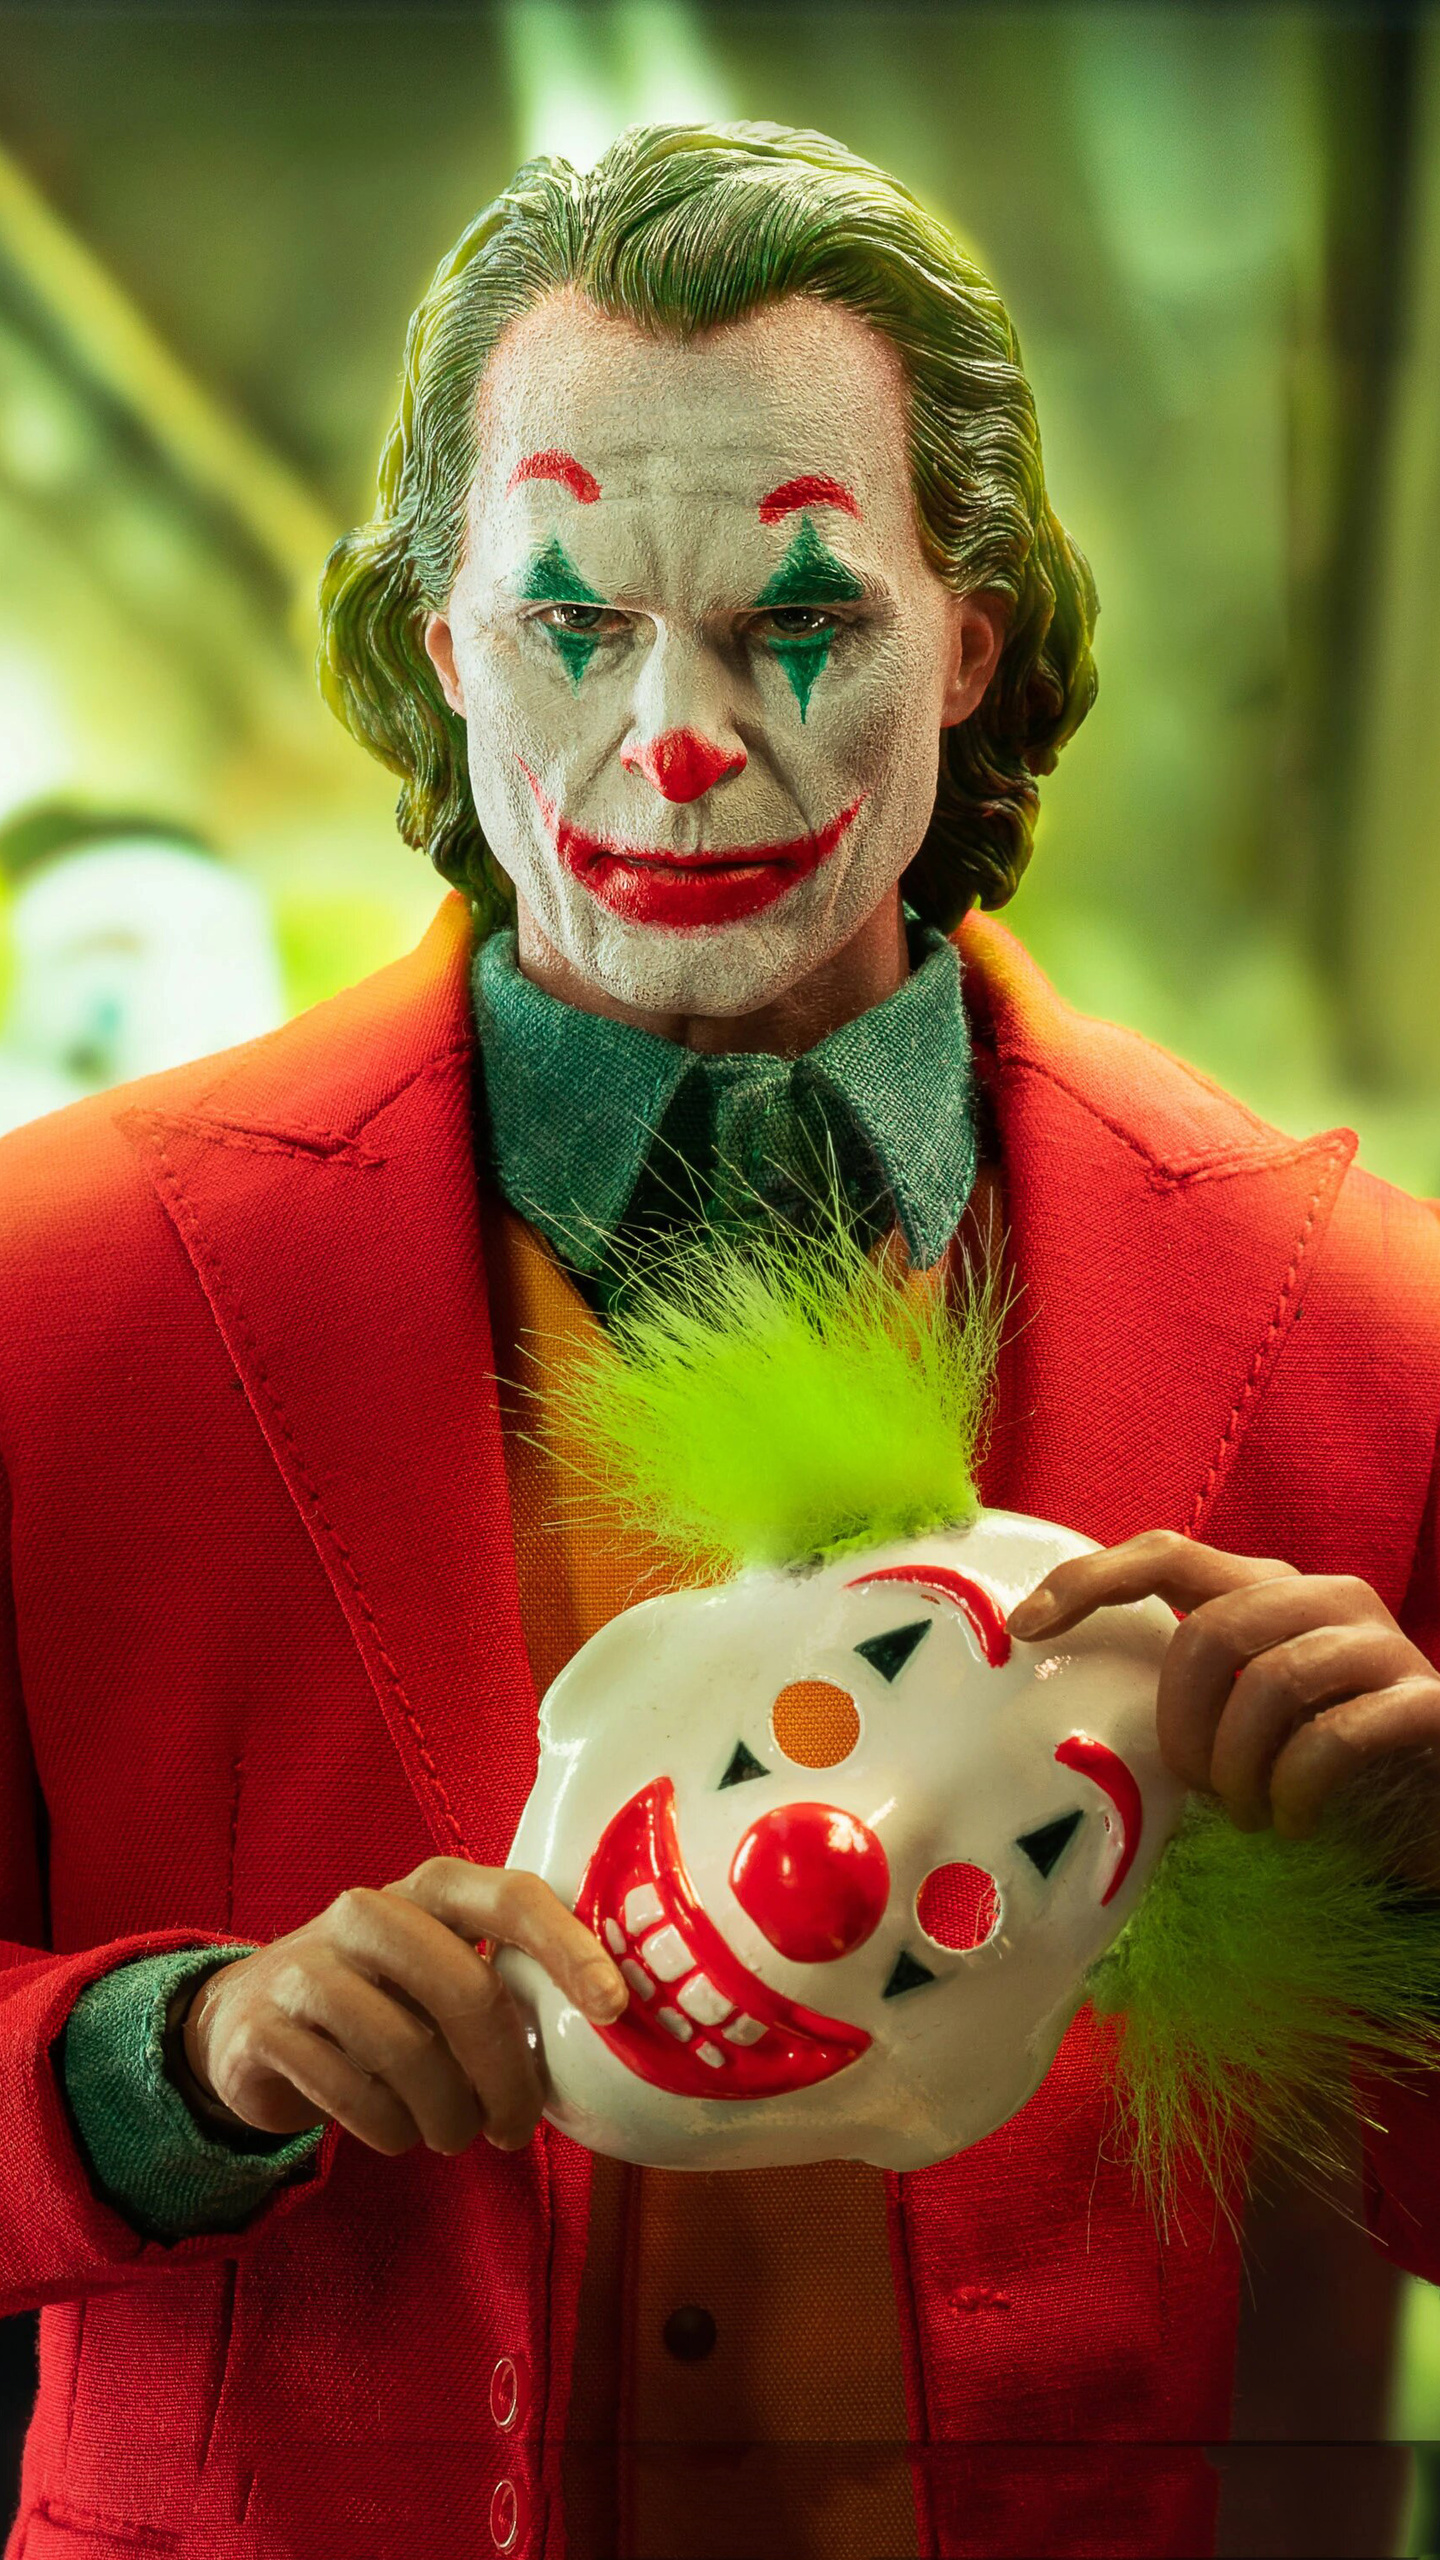 joker-clown-mask-5k-k7.jpg